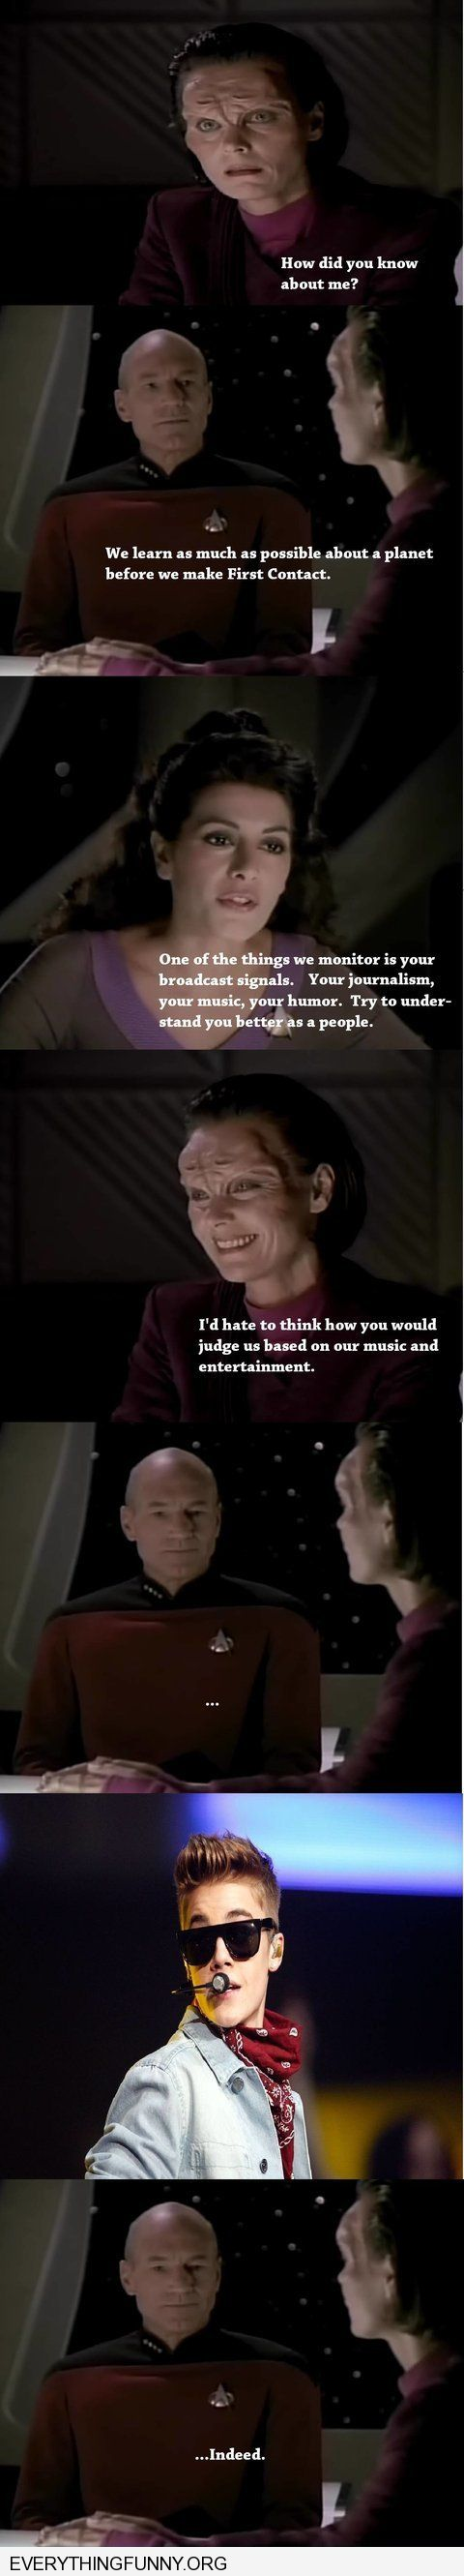 funny caption star trek clip aliens judging out planet by our music justin beiber